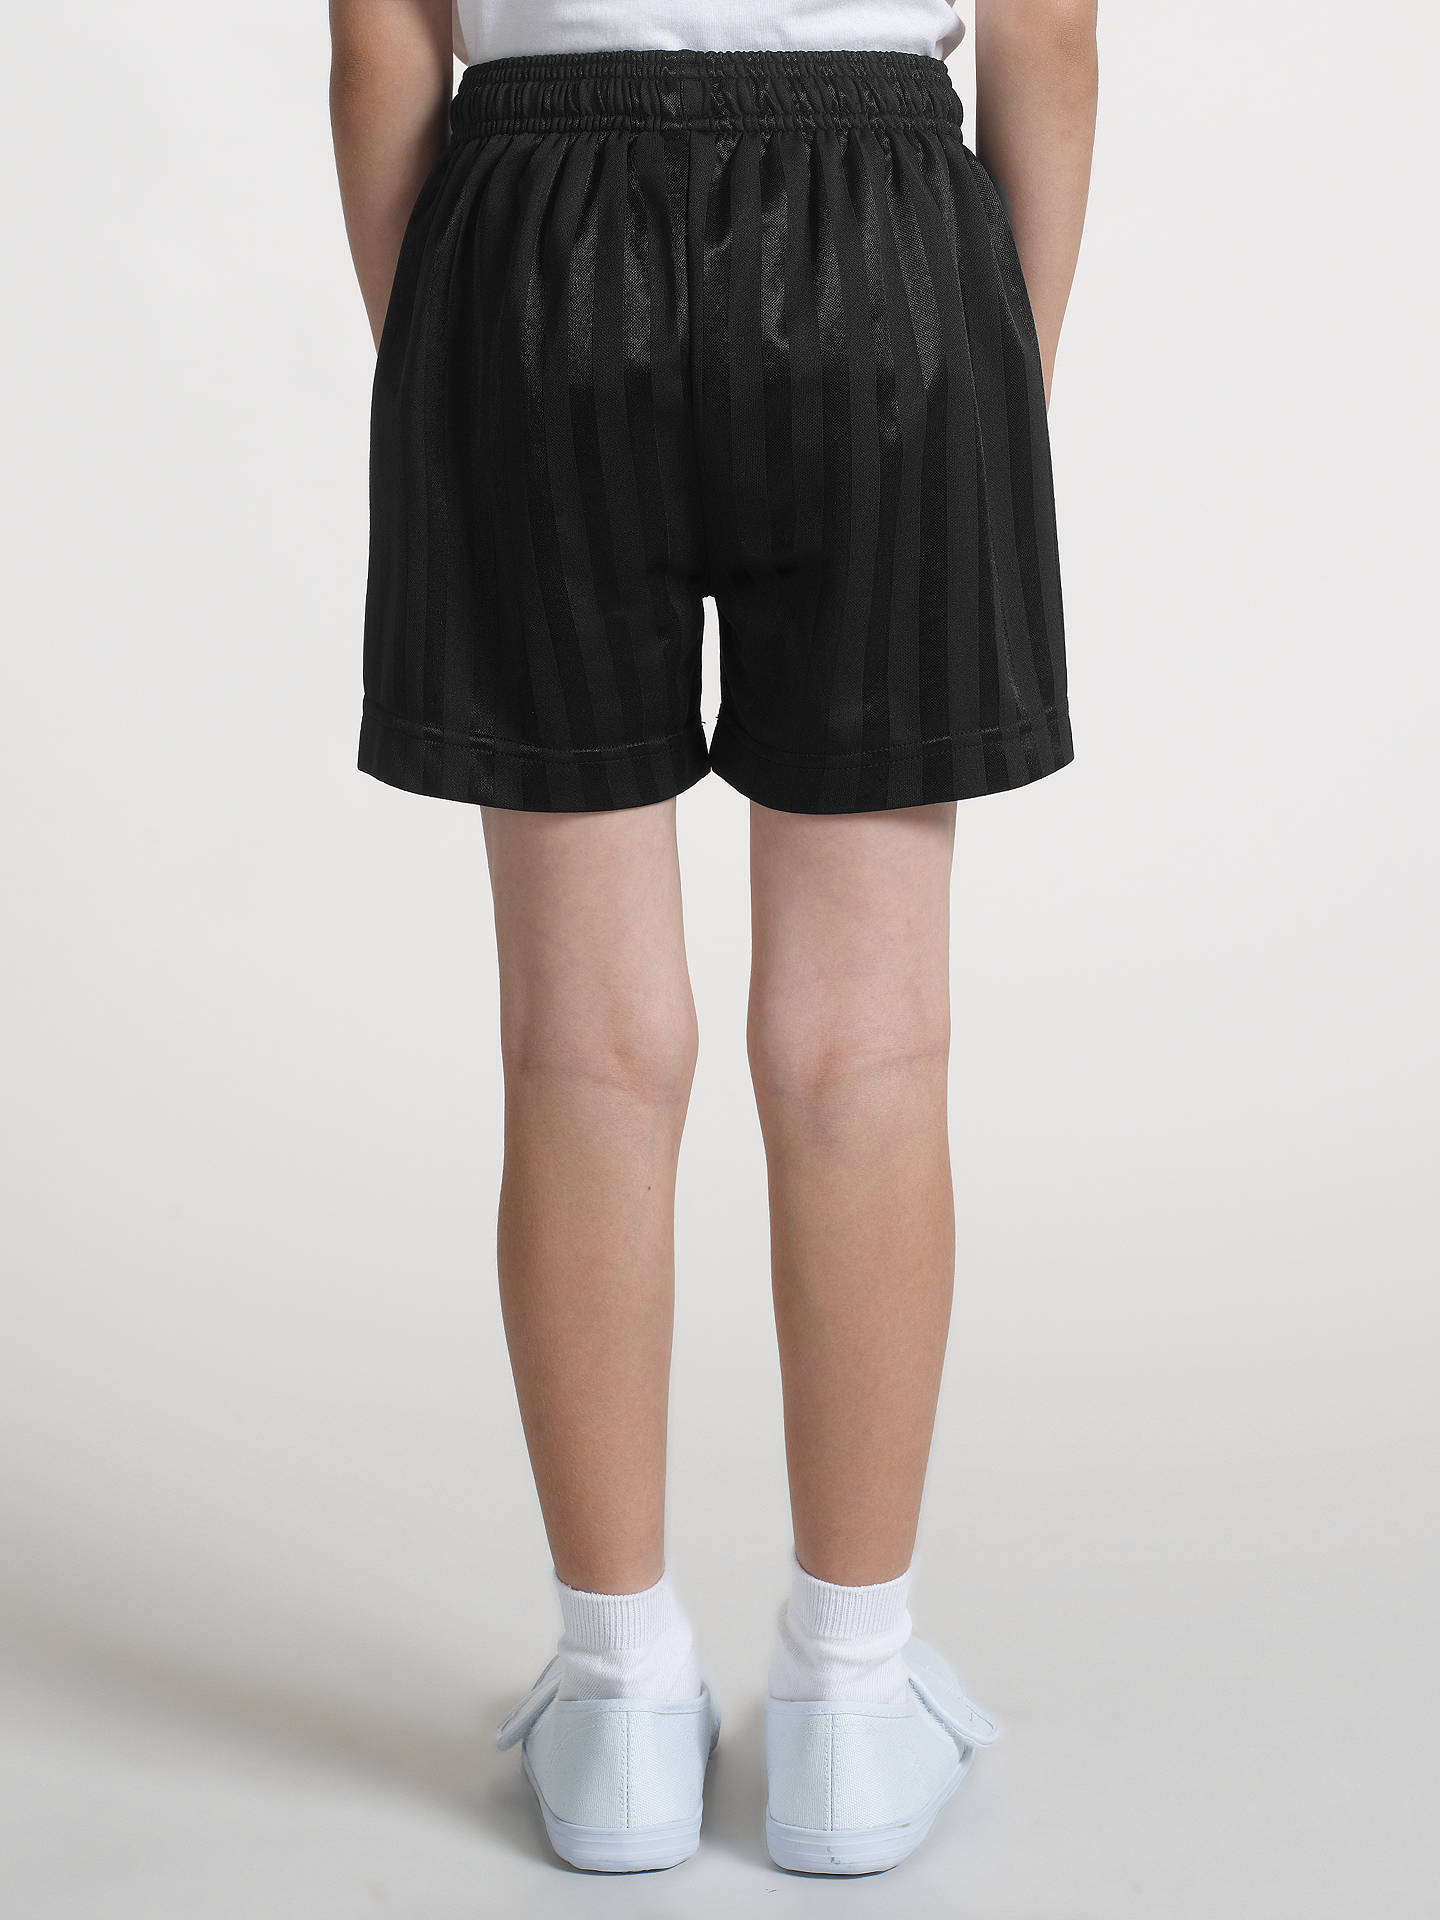 Buy John Lewis & Partners Football Shorts, Black, 13-14 years Online at johnlewis.com